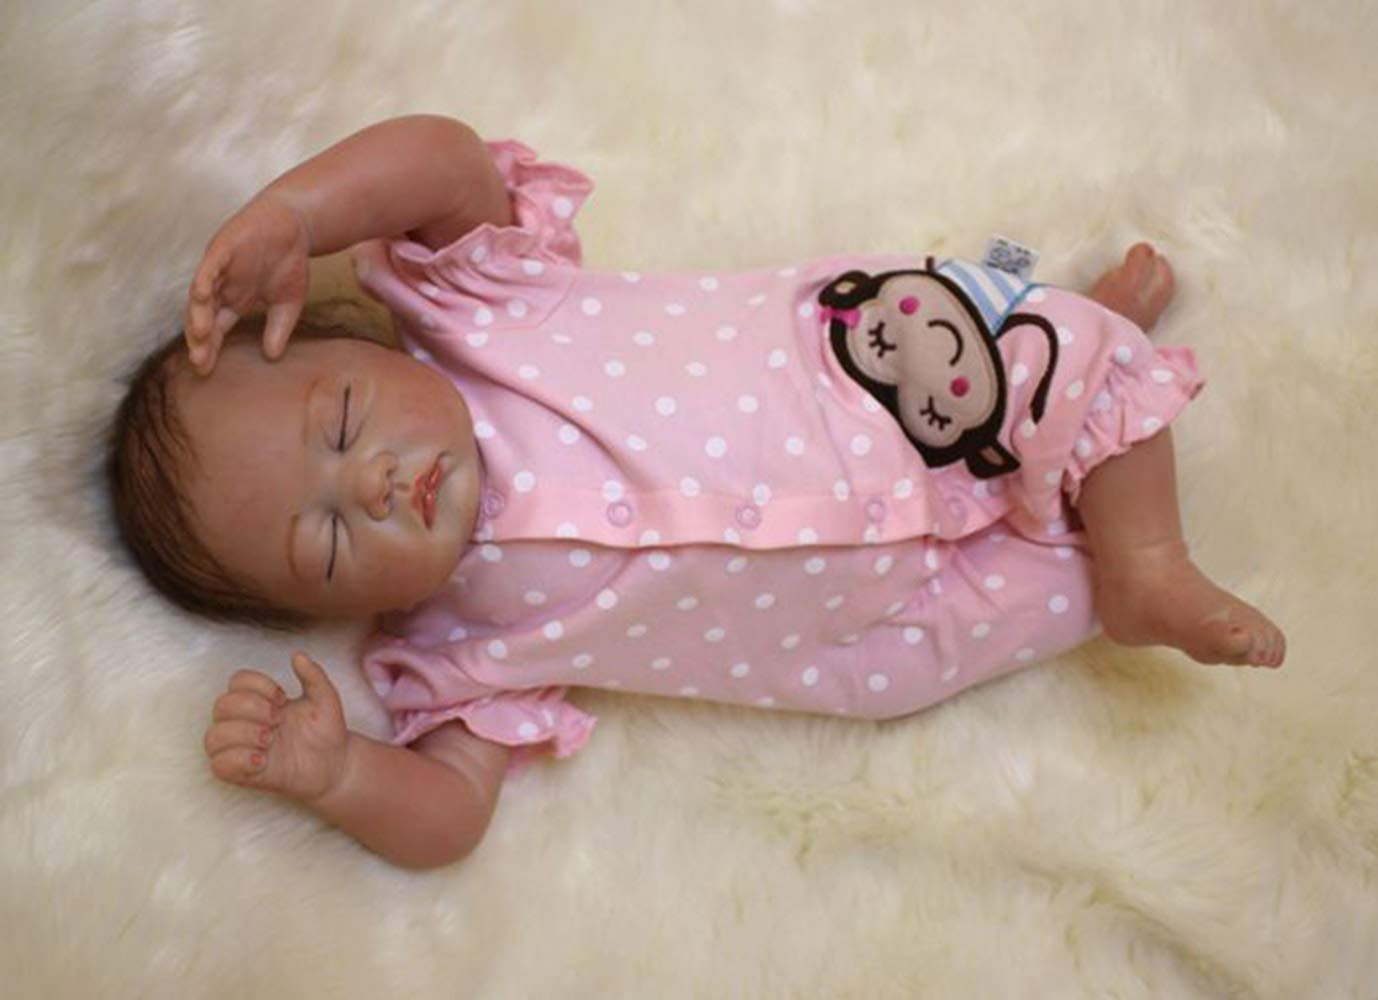 Wamdoll 21 inch A Moment in My Arms, Forever in My Heart Sleepy Reborn Baby Doll by Wamdoll